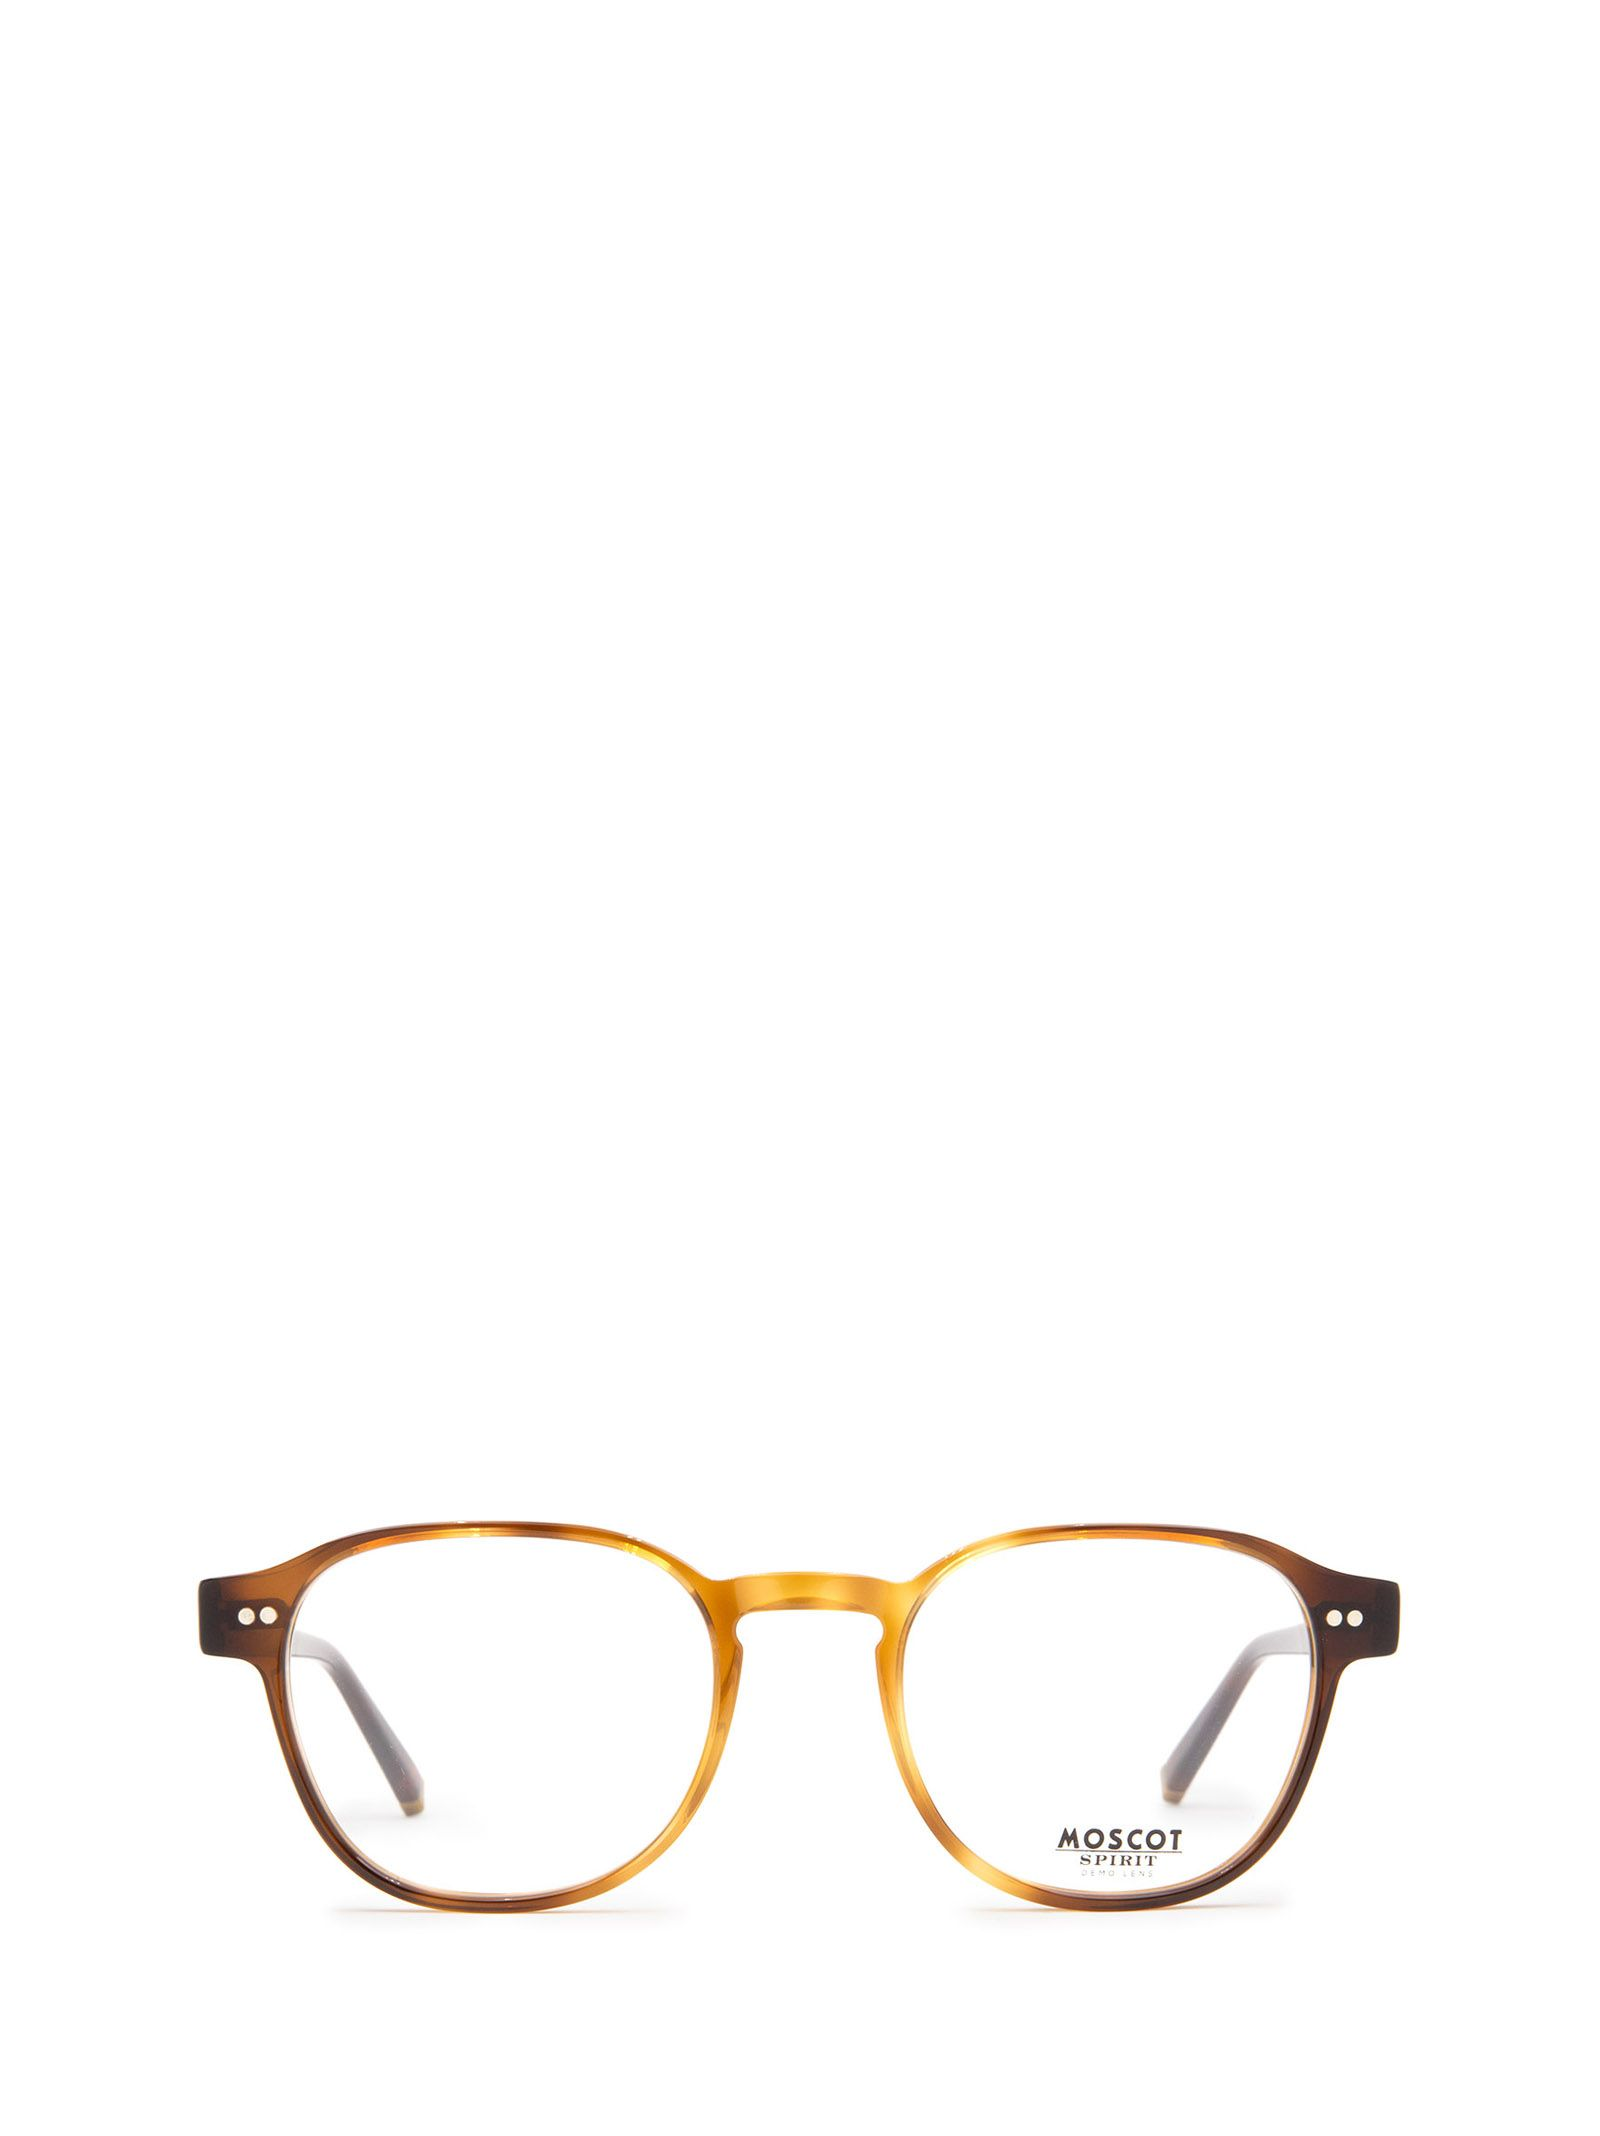 Moscot MOSCOT WOMEN'S BROWN METAL GLASSES